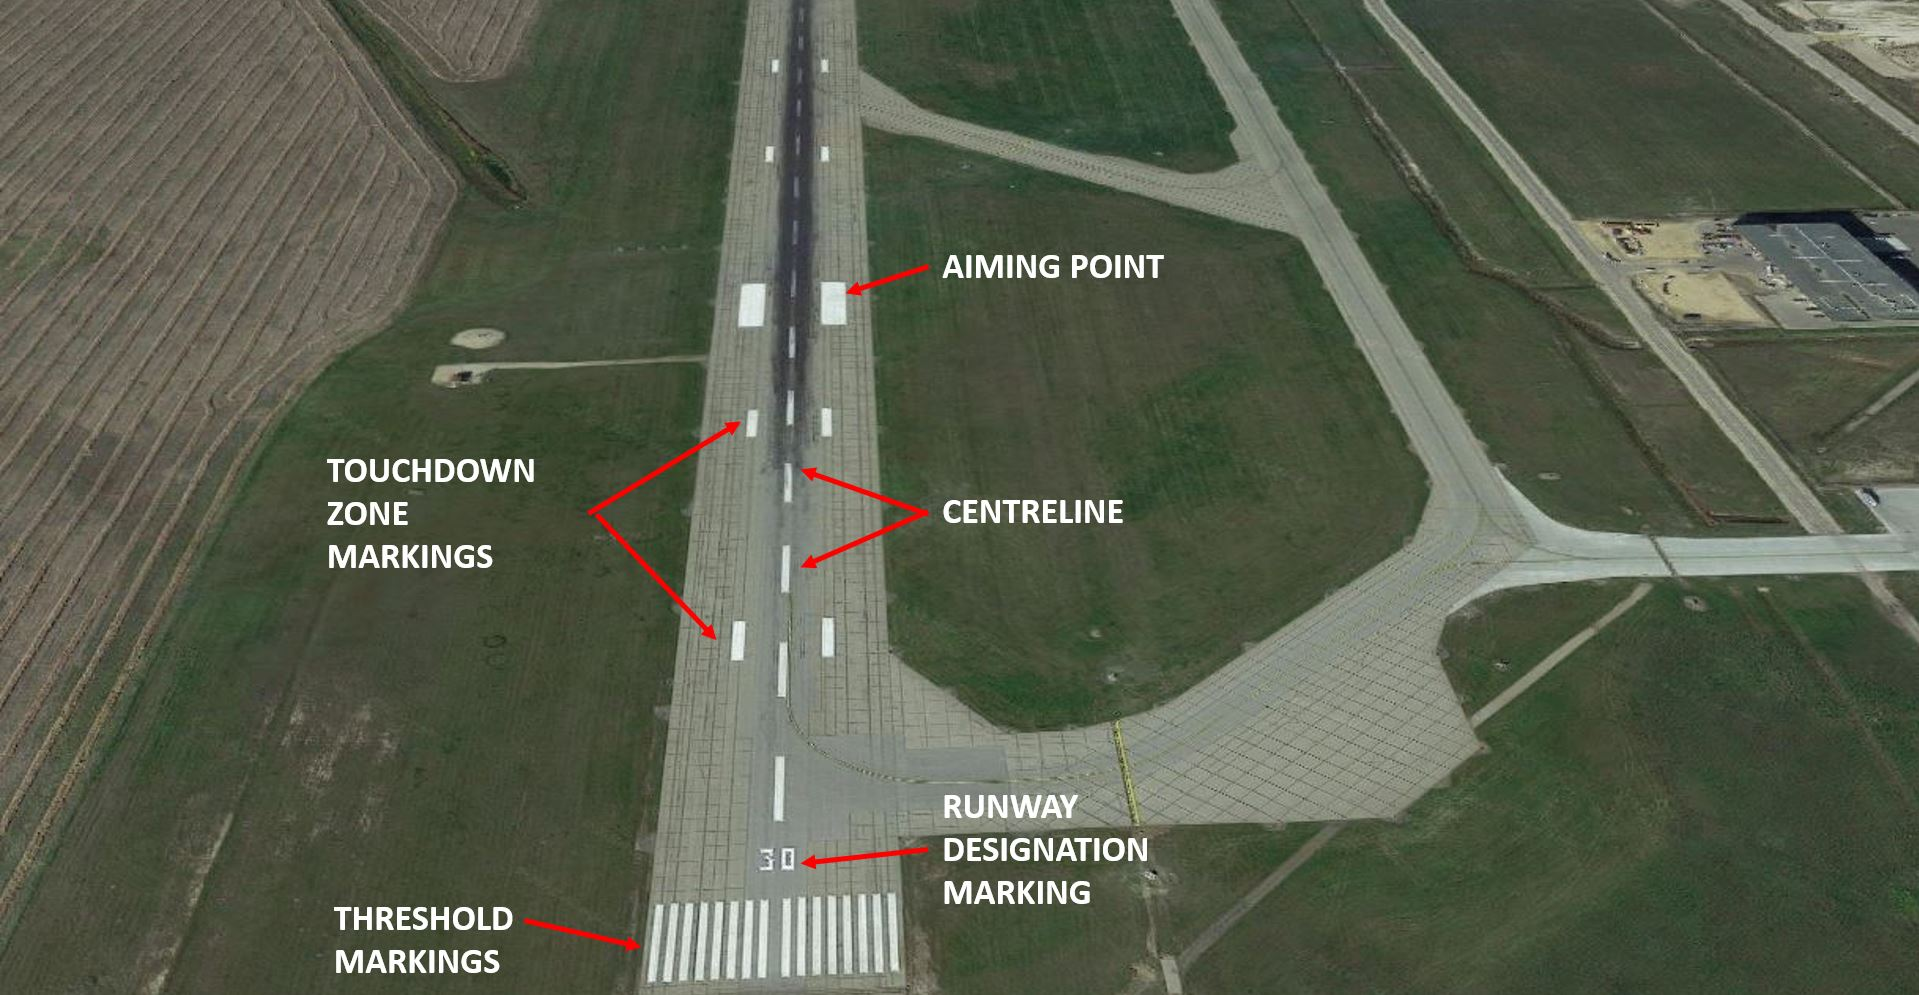 Figure 1 : Runway 12/30 at Edmonton International Airport with Relevant Points Highlighted